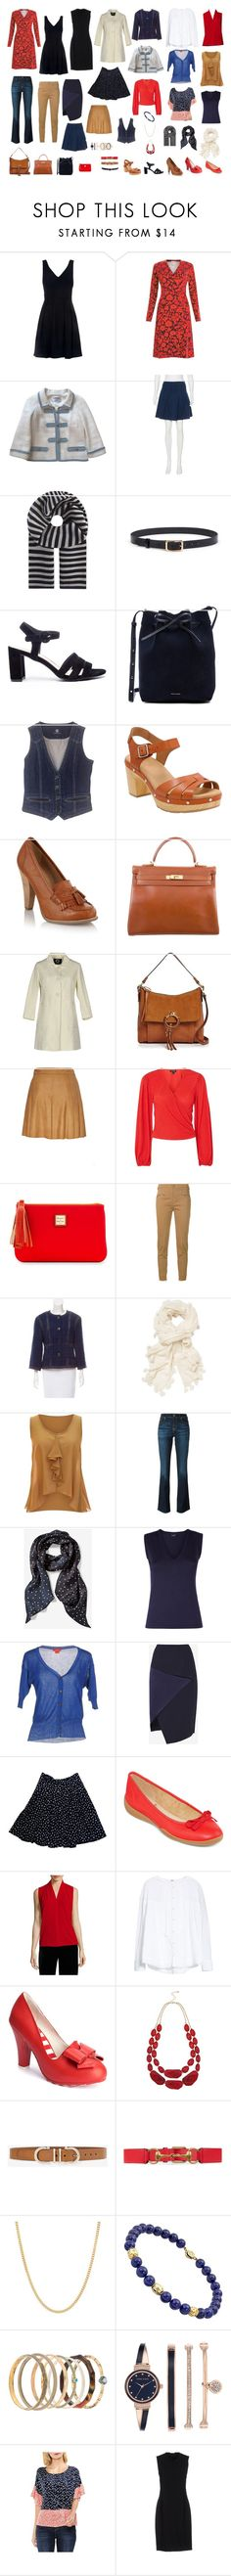 """""""Lucky month of outfits"""" by ketutar ❤ liked on Polyvore featuring Claudie Pierlot, Boden, Chanel, Diane Von Furstenberg, 'S MaxMara, Chinese Laundry, Mansur Gavriel, Bogner, Clarks and Faith"""